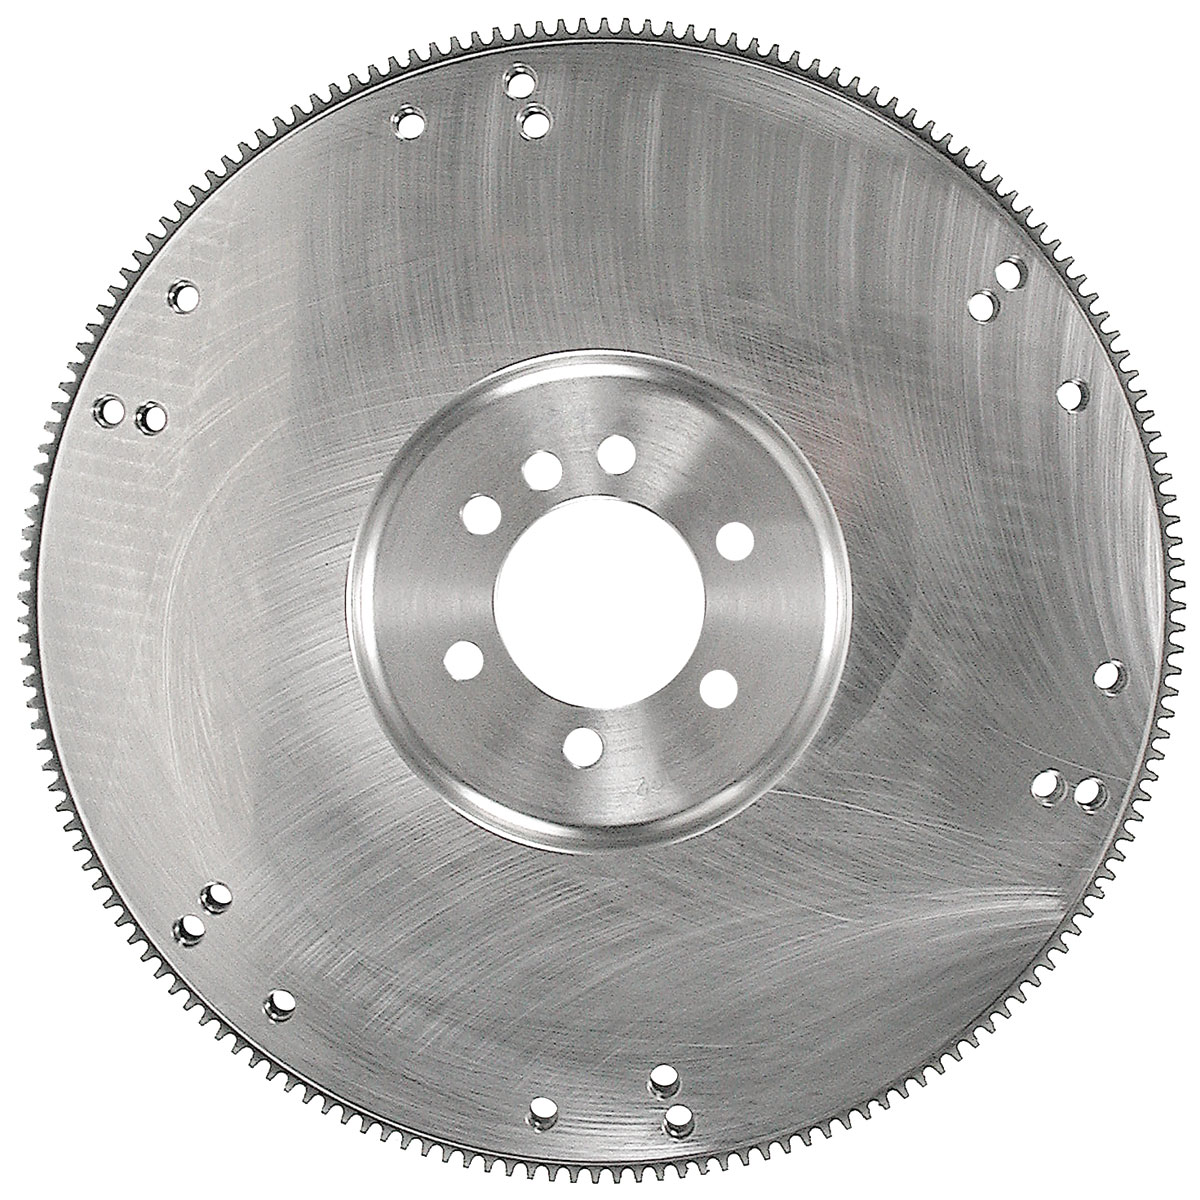 Photo of Flywheels, Billet Steel, Hays 168 Tooth 36lb., 454, ext. bal.